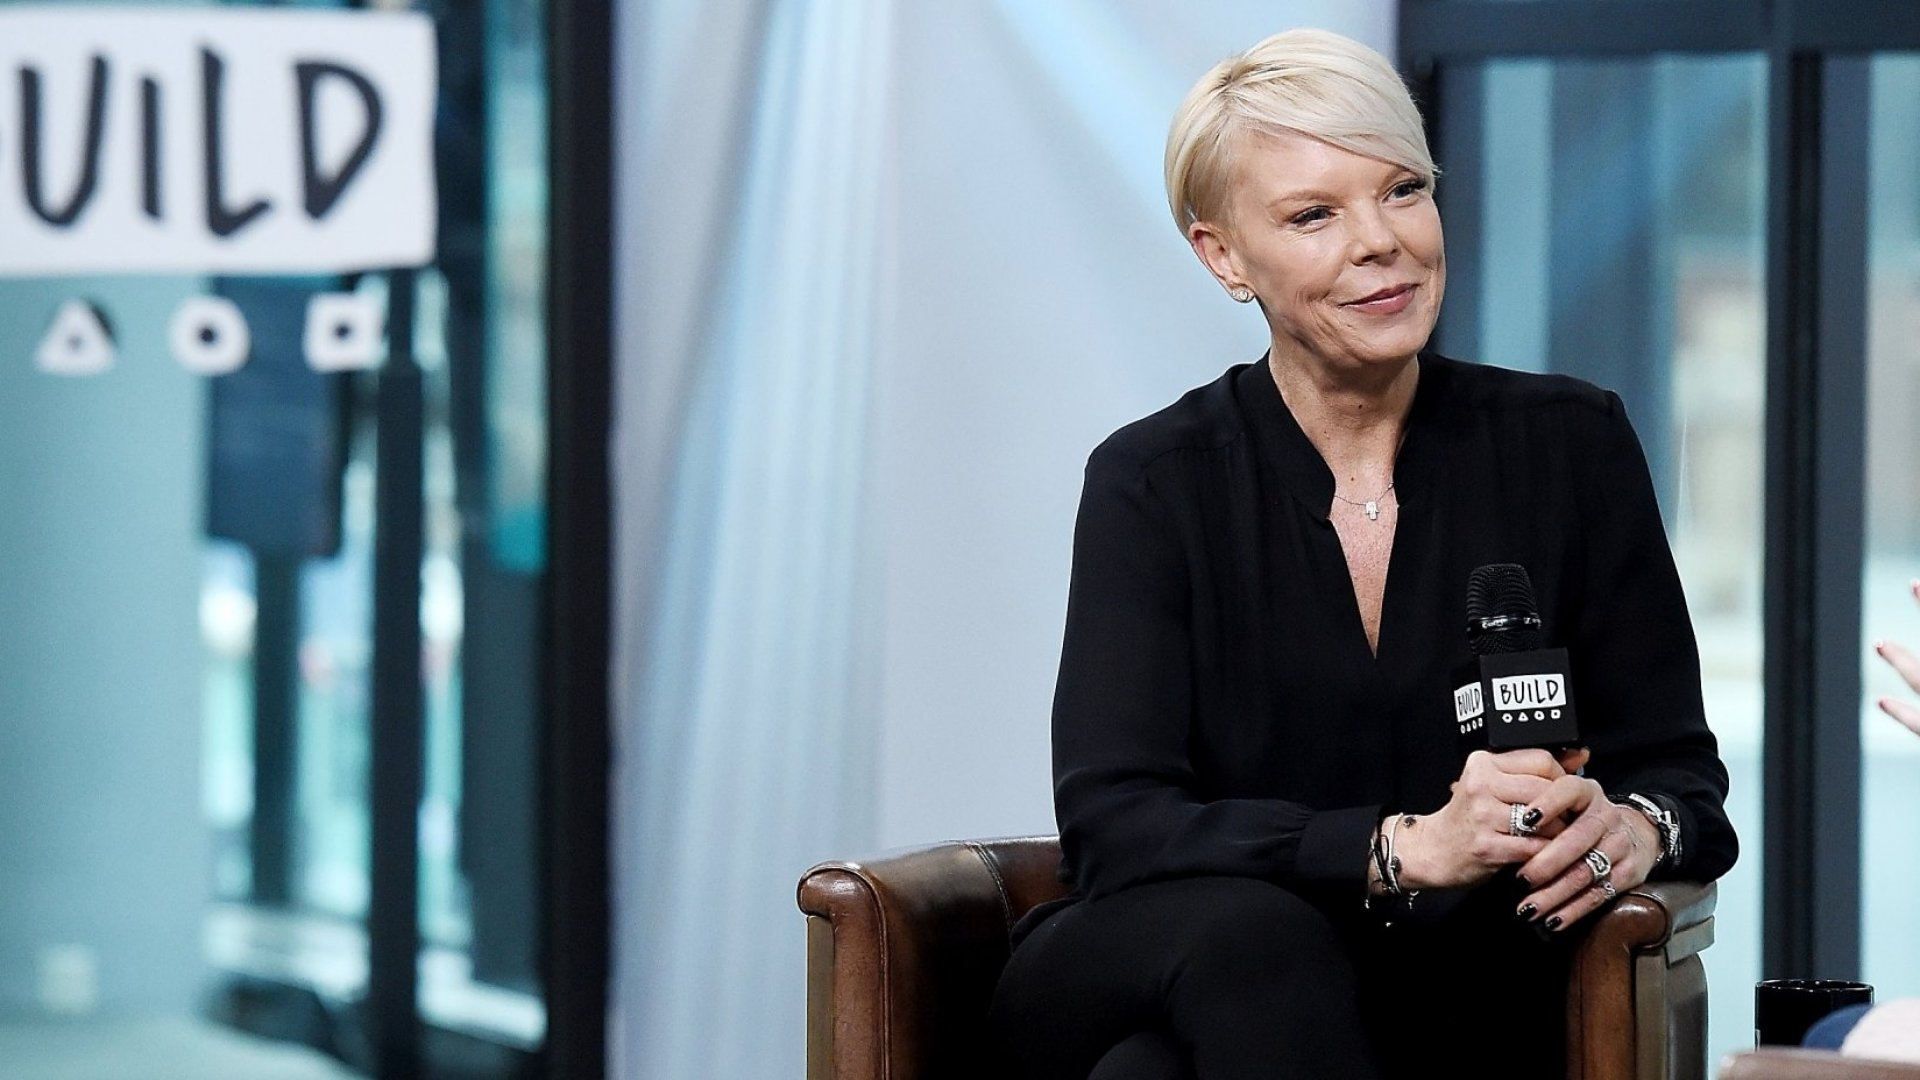 How to Build a Family Business That Lasts for Generations, According to Bravo TV Star Tabatha Coffey